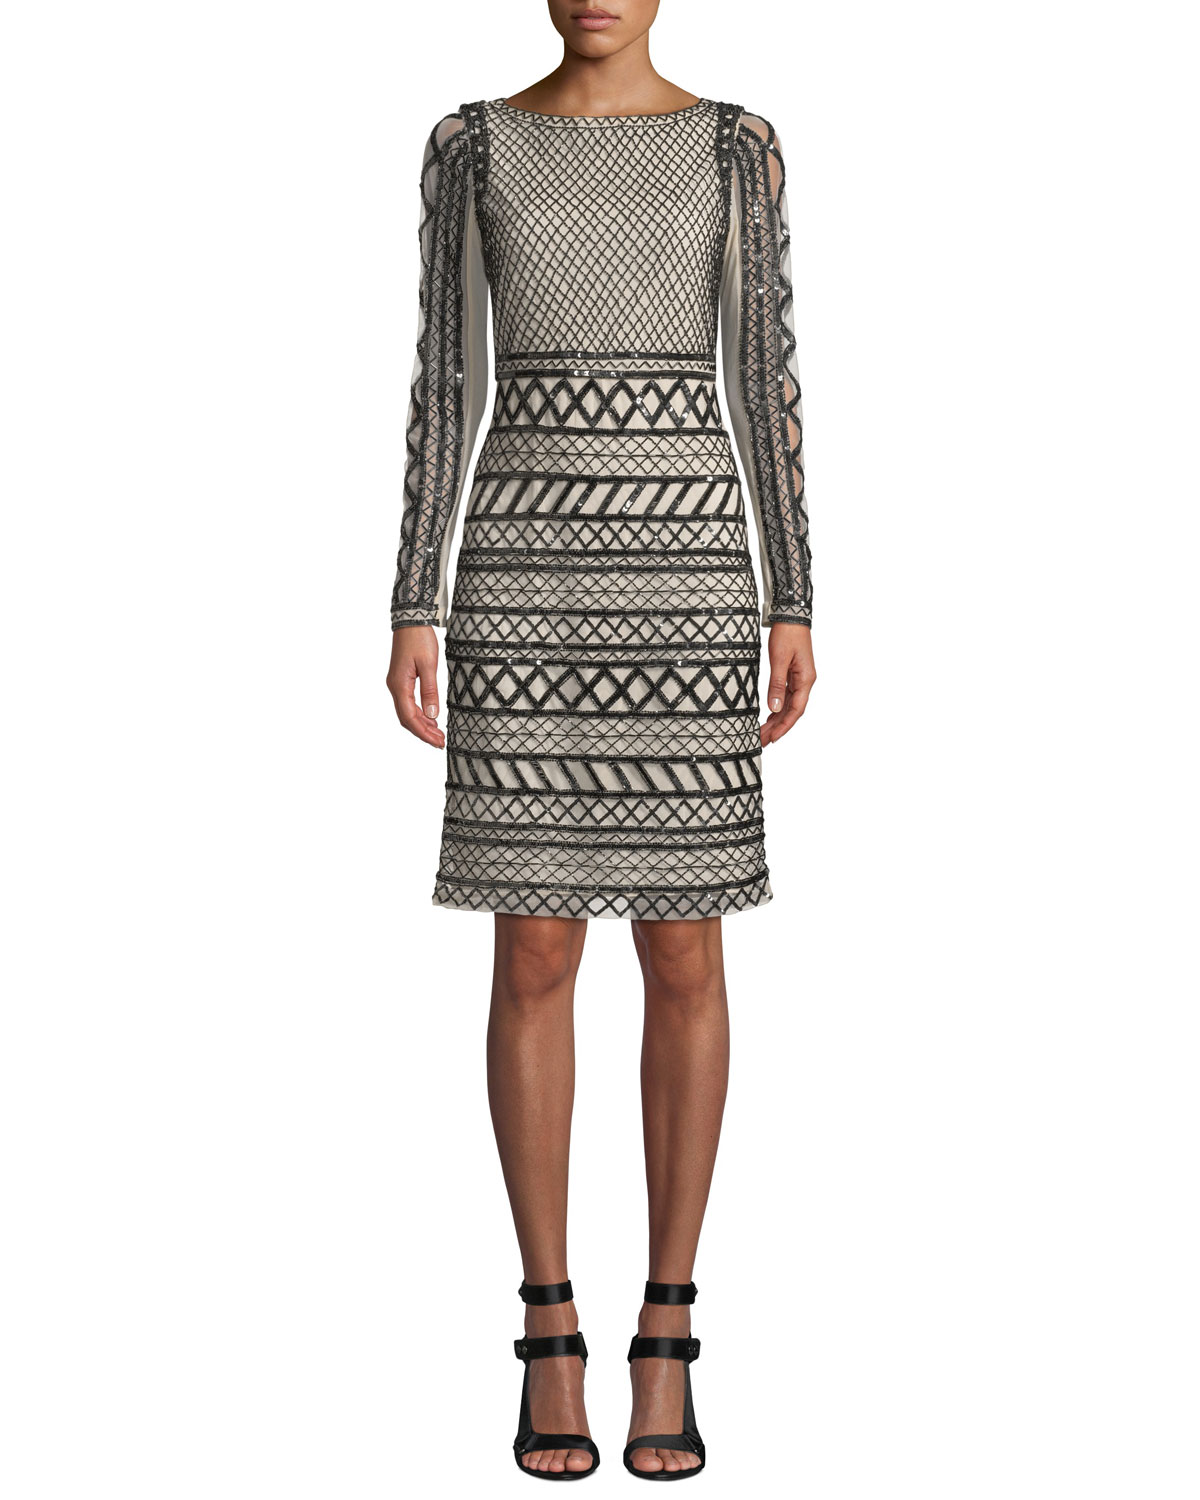 8896ab30d33 Alice + Olivia Tabitha Embellished Fitted Dress